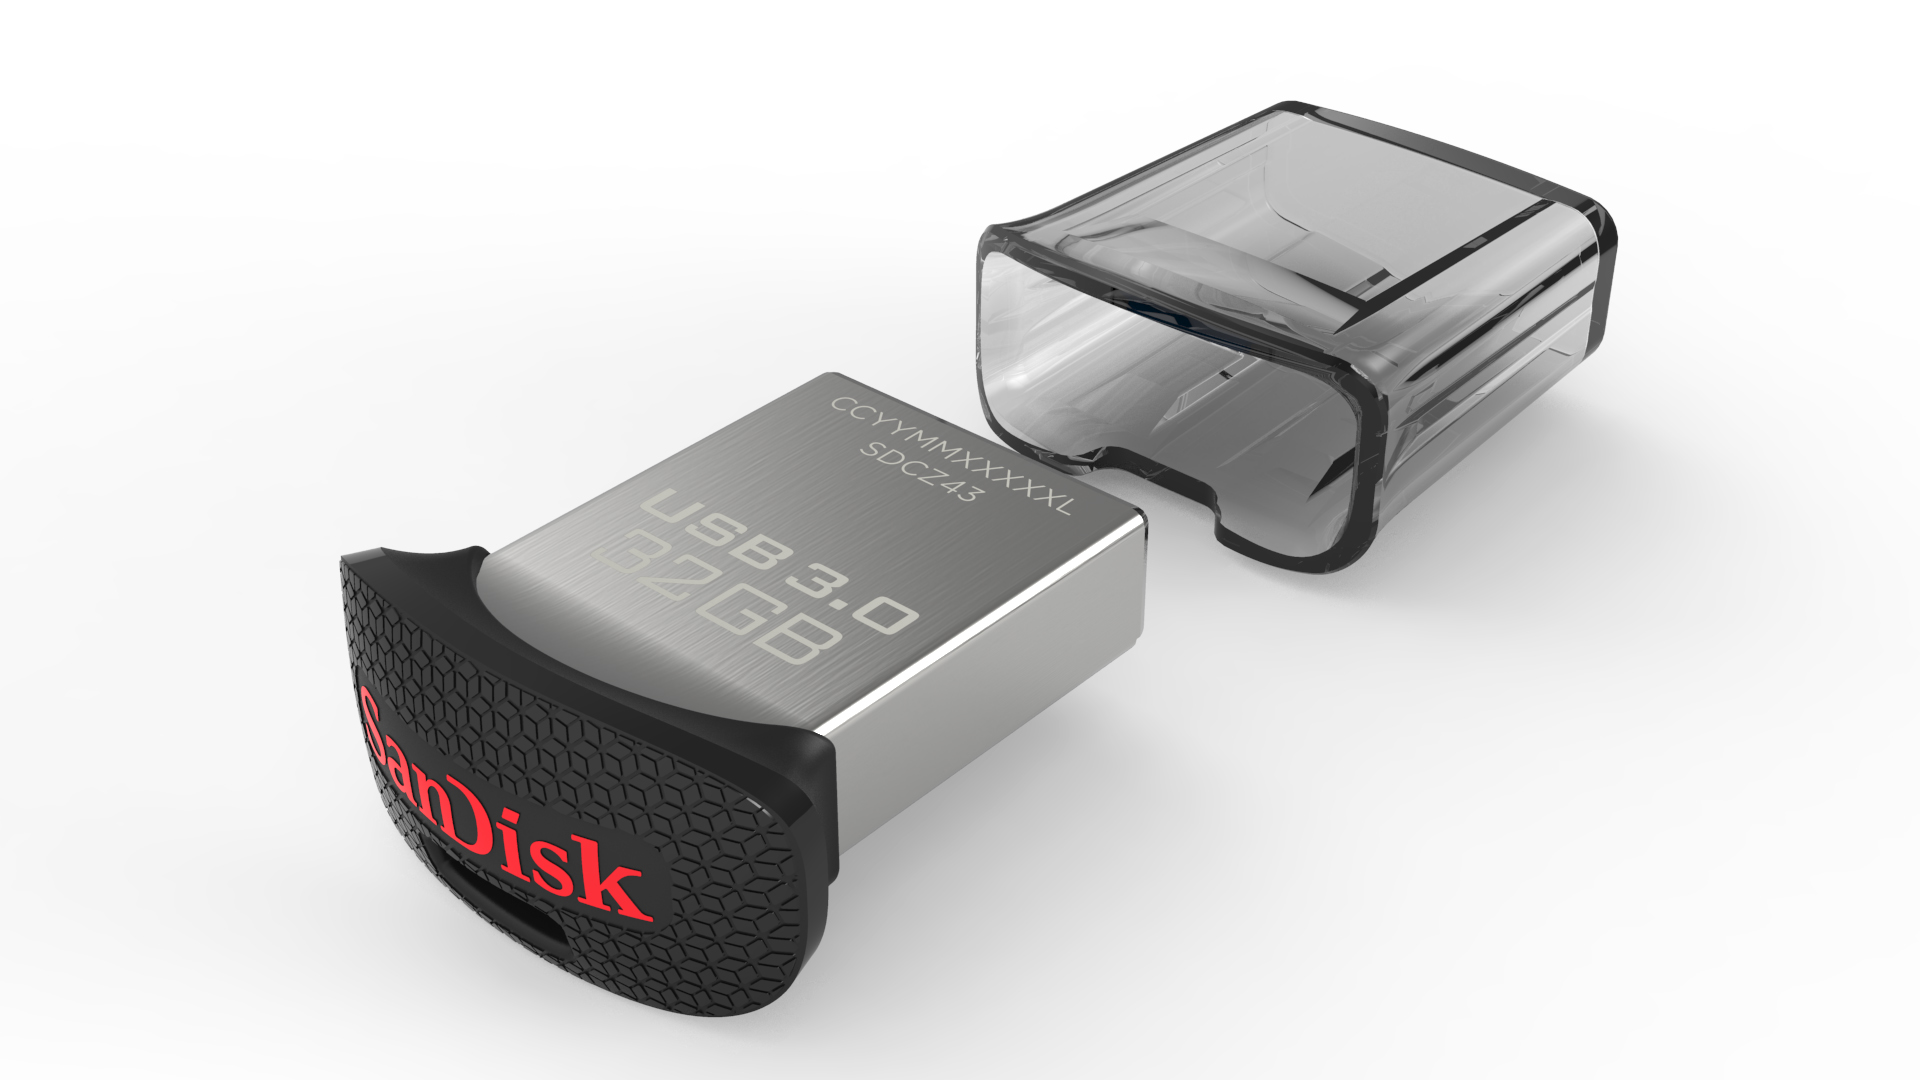 SanDisk 32GB Ultra Fit™ USB 3.0 Flash Drive - SDCZ43-032G-A46